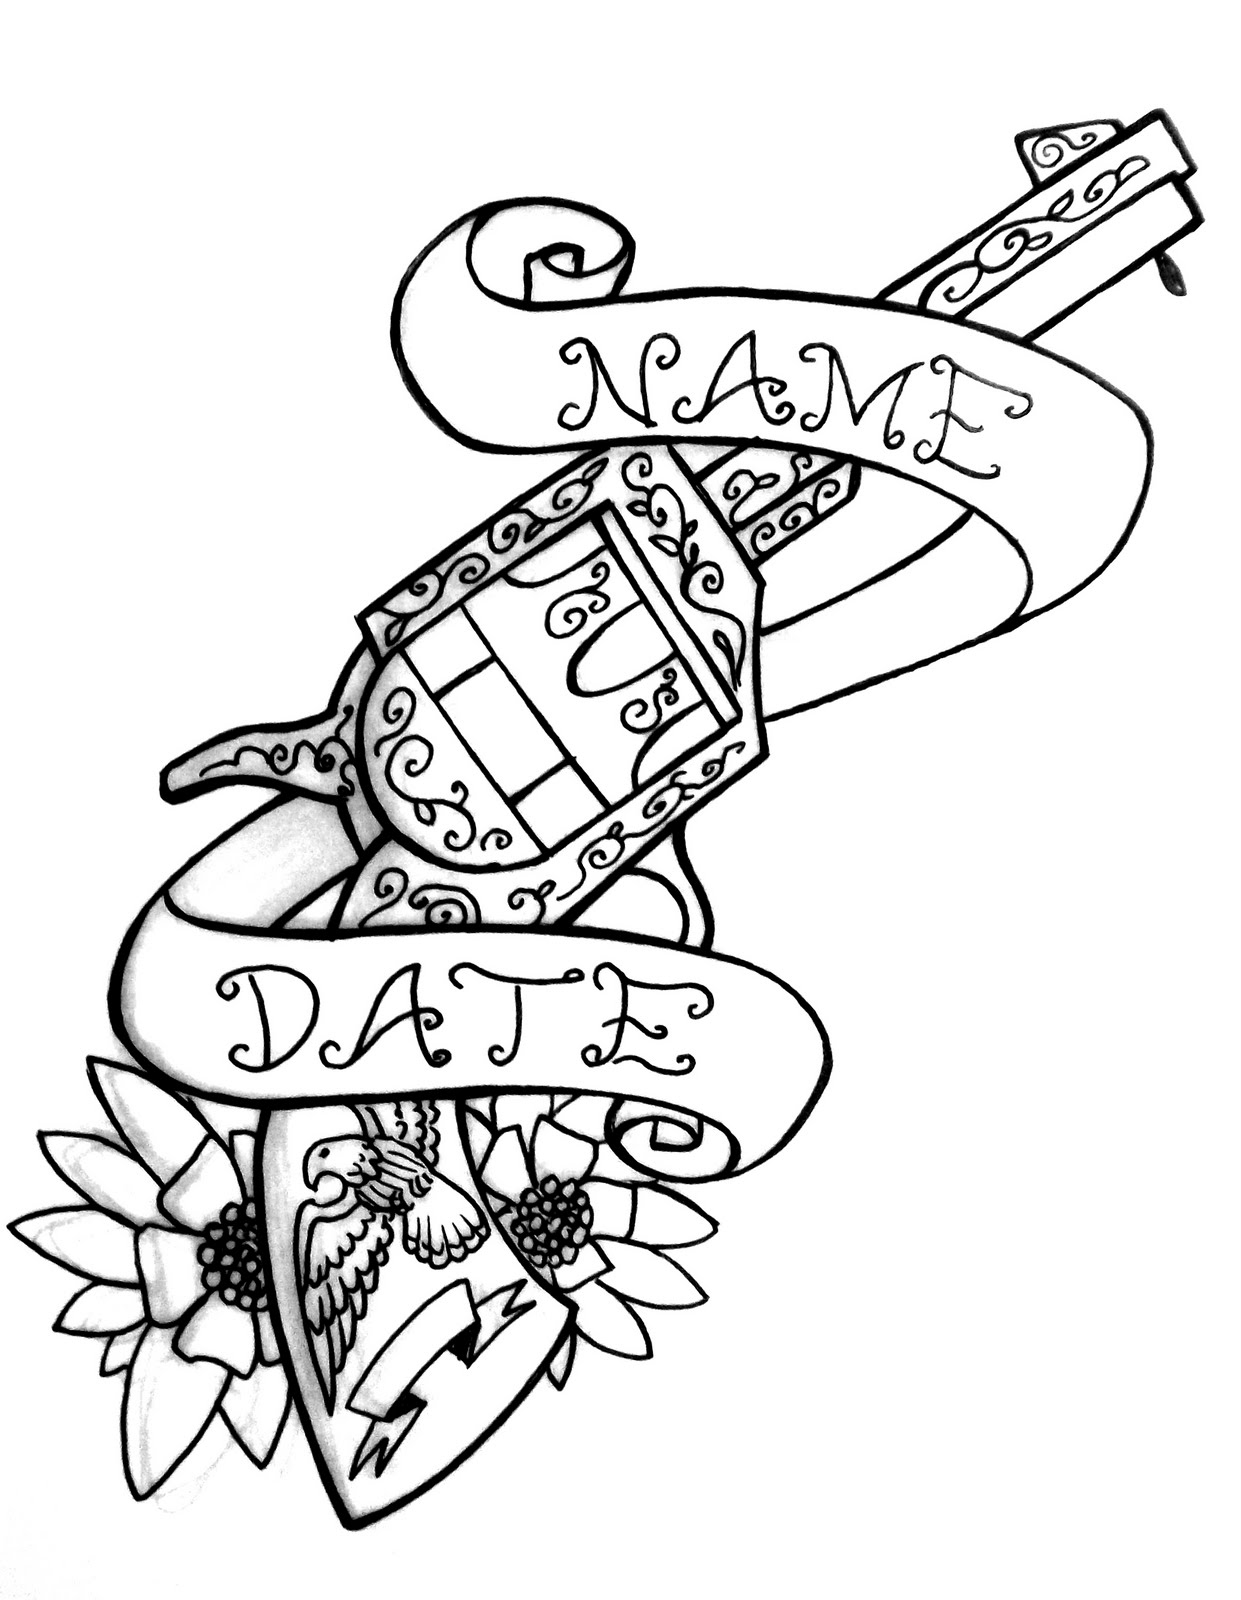 Coloring pages of random designs ~ 30 Random Tattoo Designs in 30 Days: September 2010